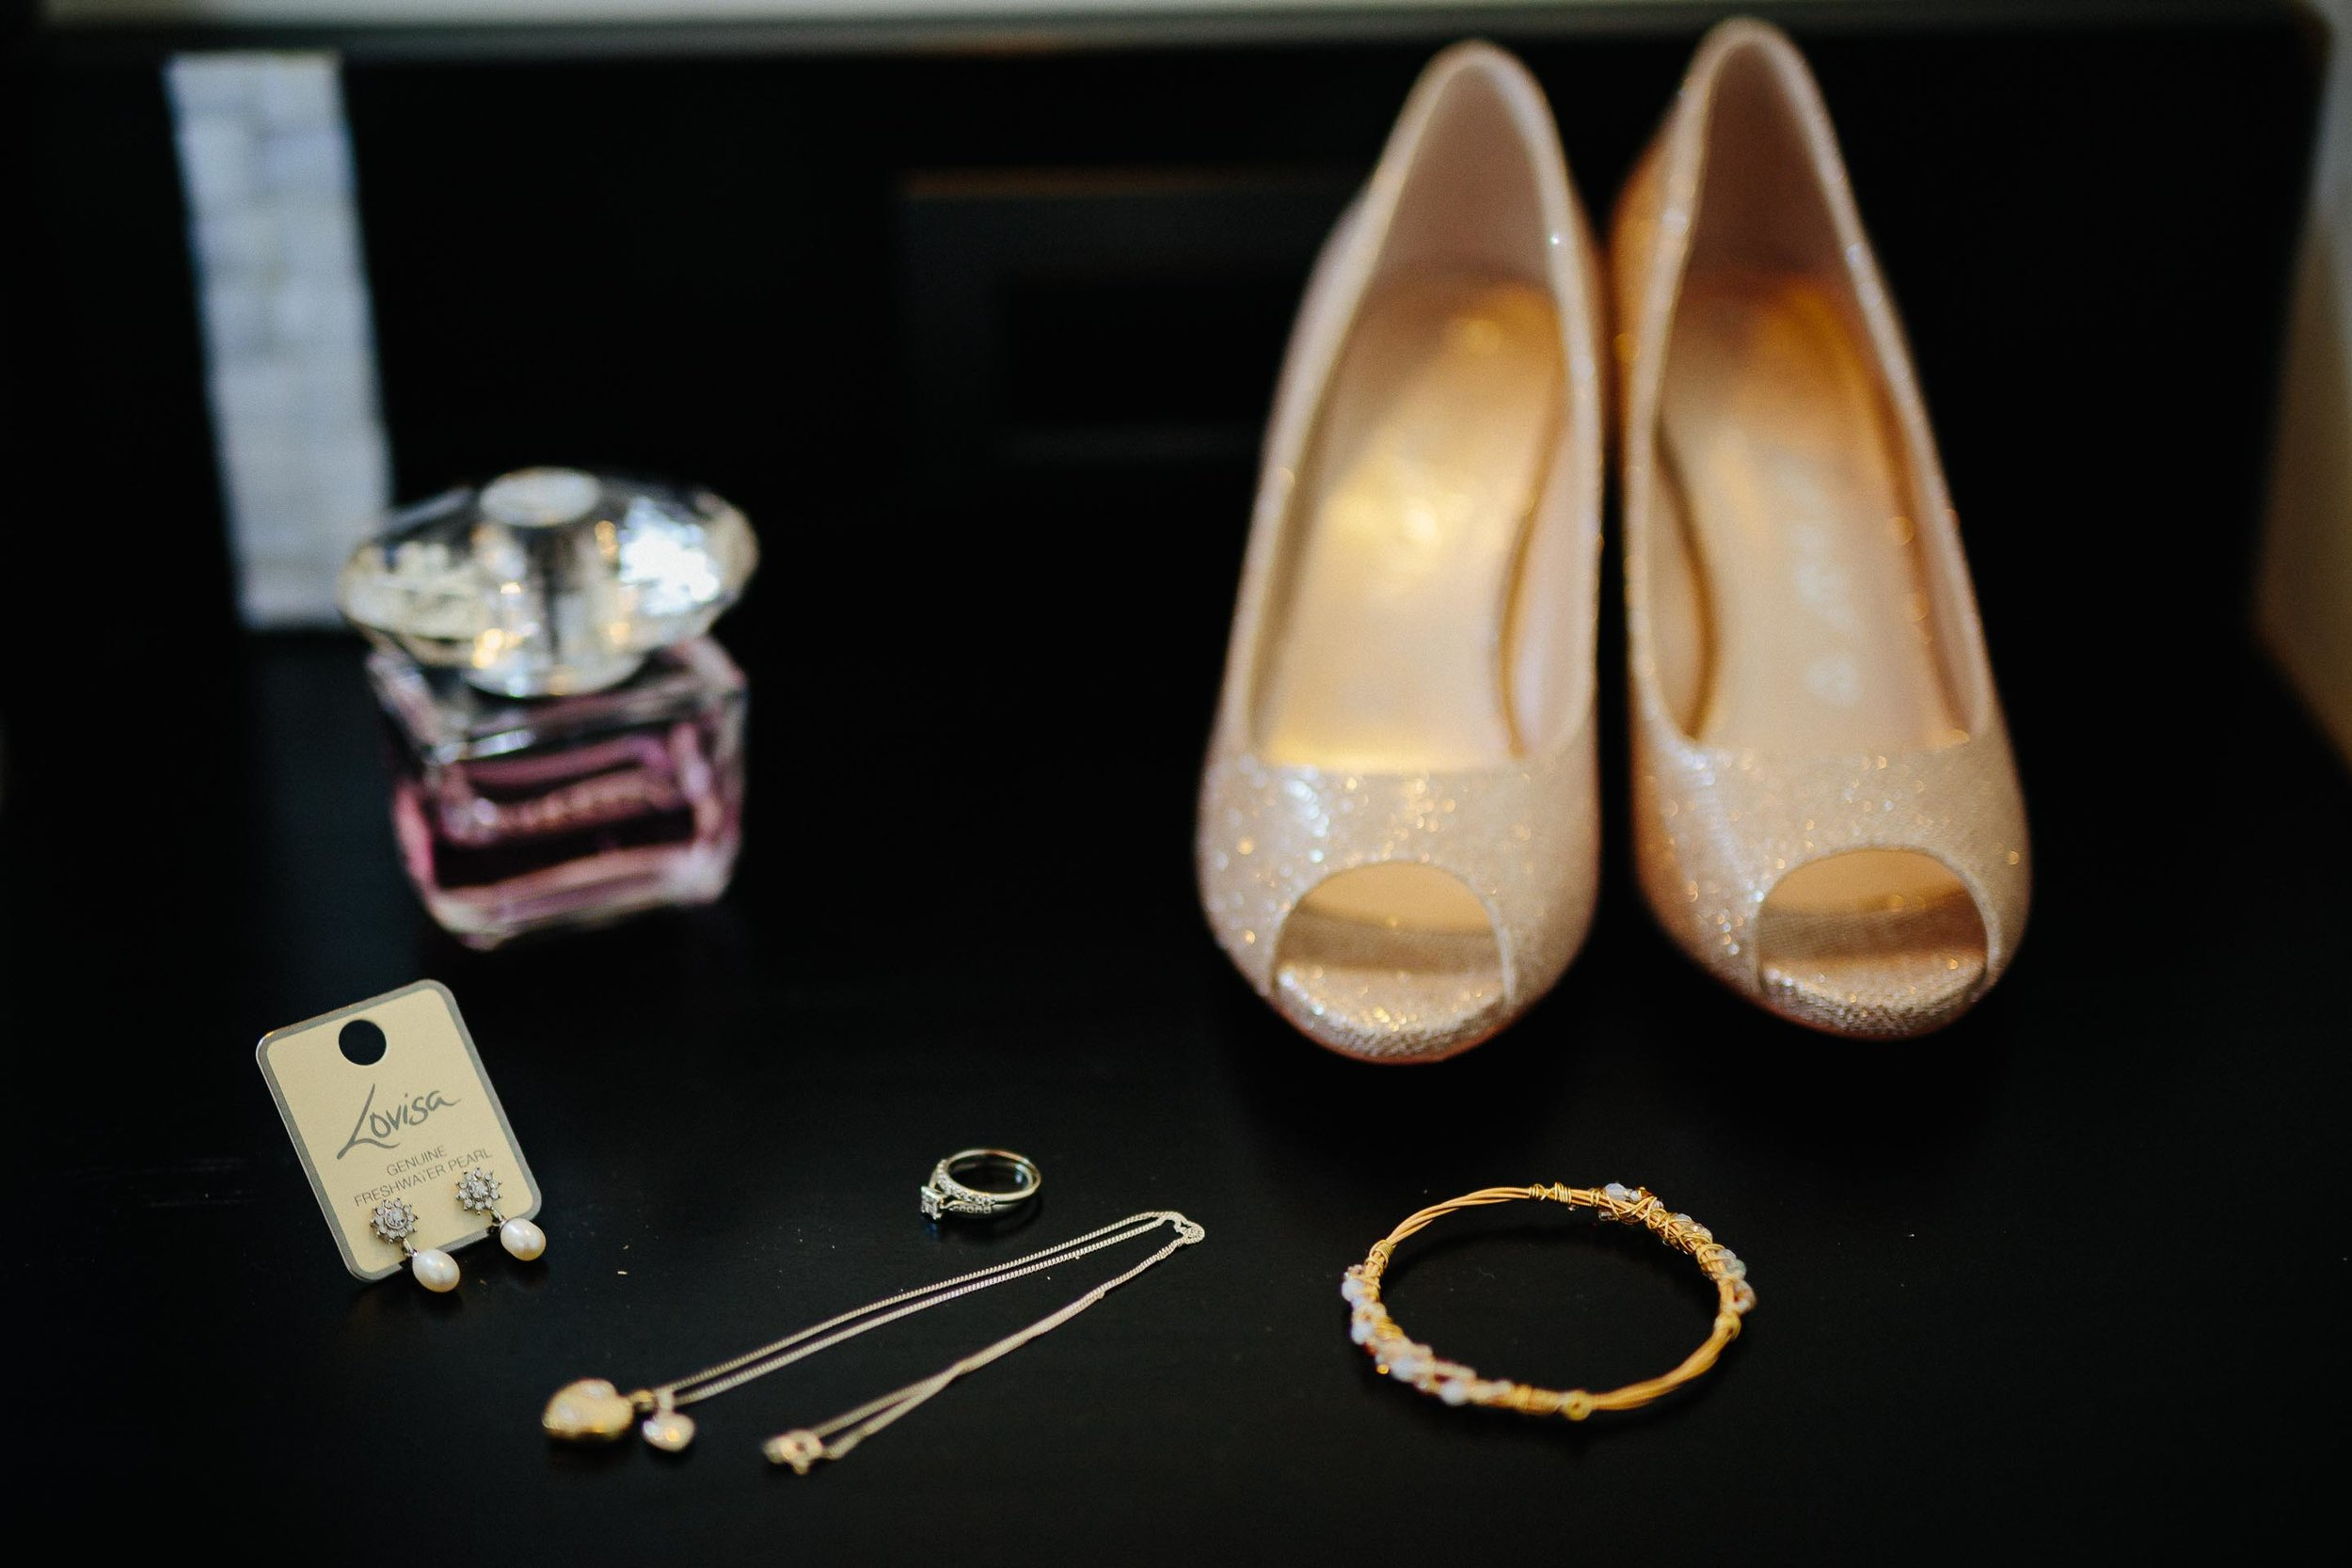 the brides shoes, jewellery and perfume